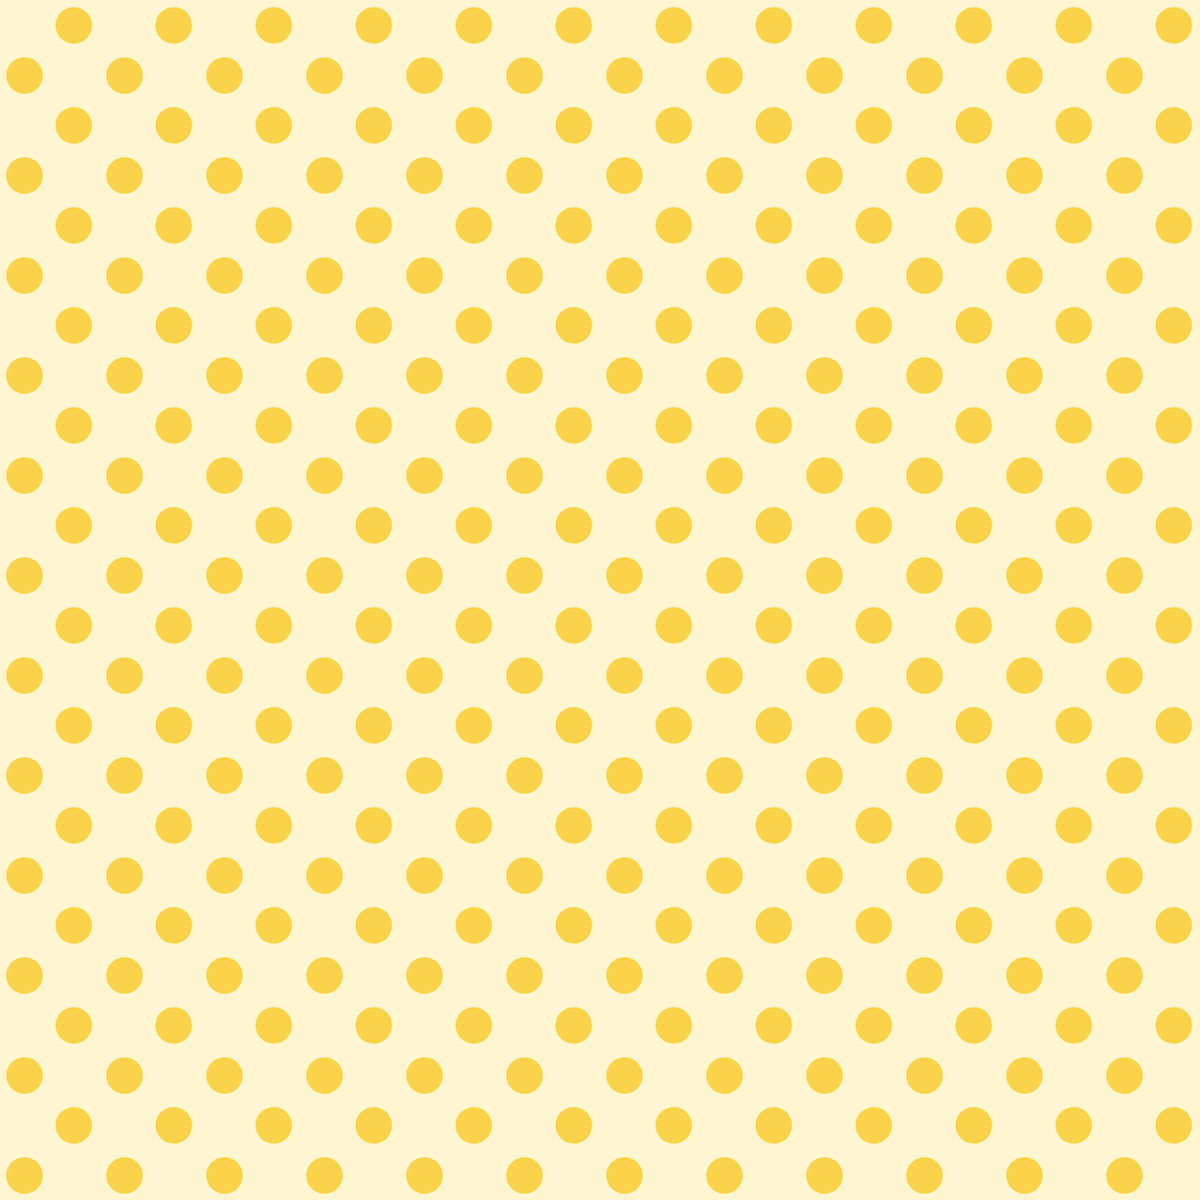 Yellow Polka Dot Wallpaper - WallpaperSafari